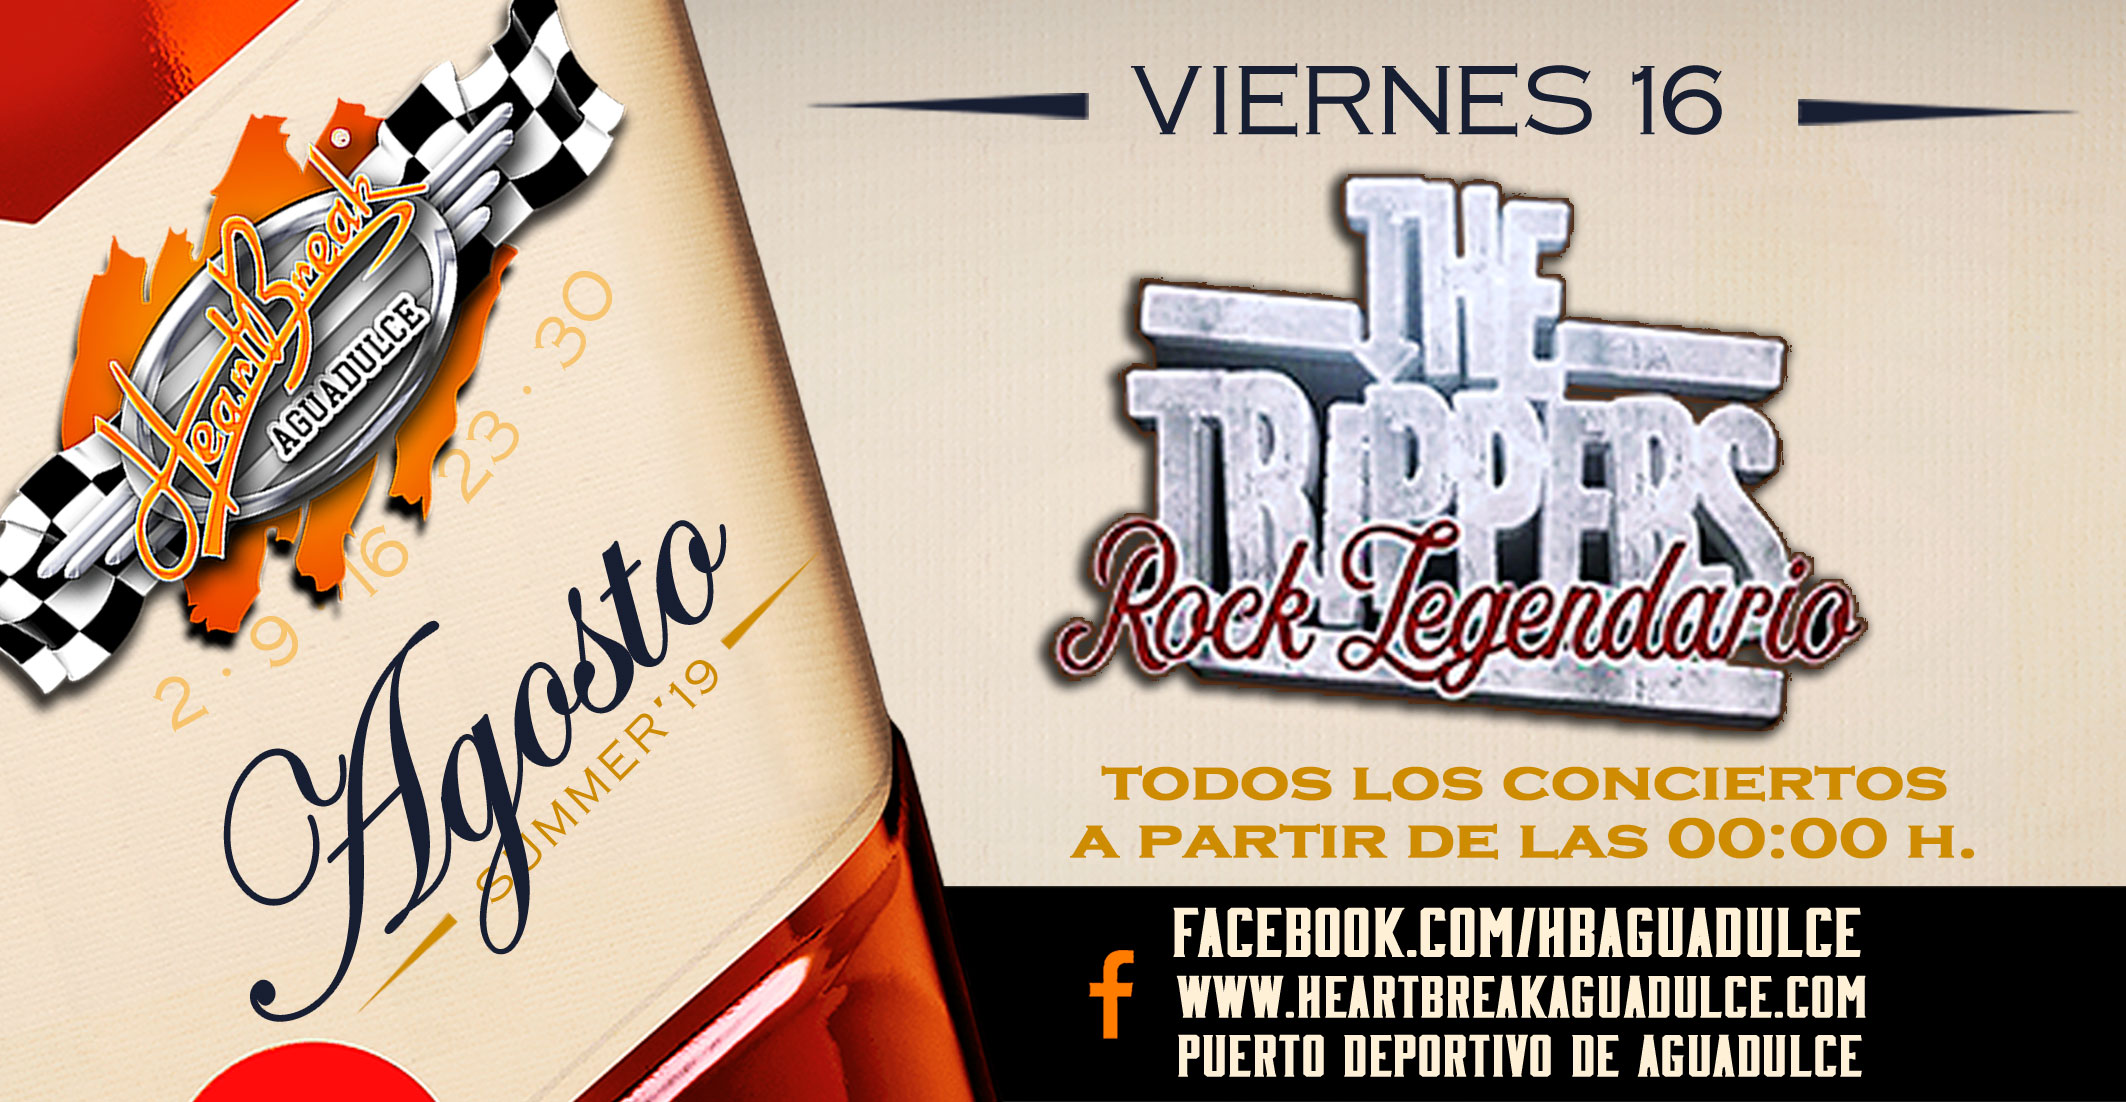 Concierto de The Trippers